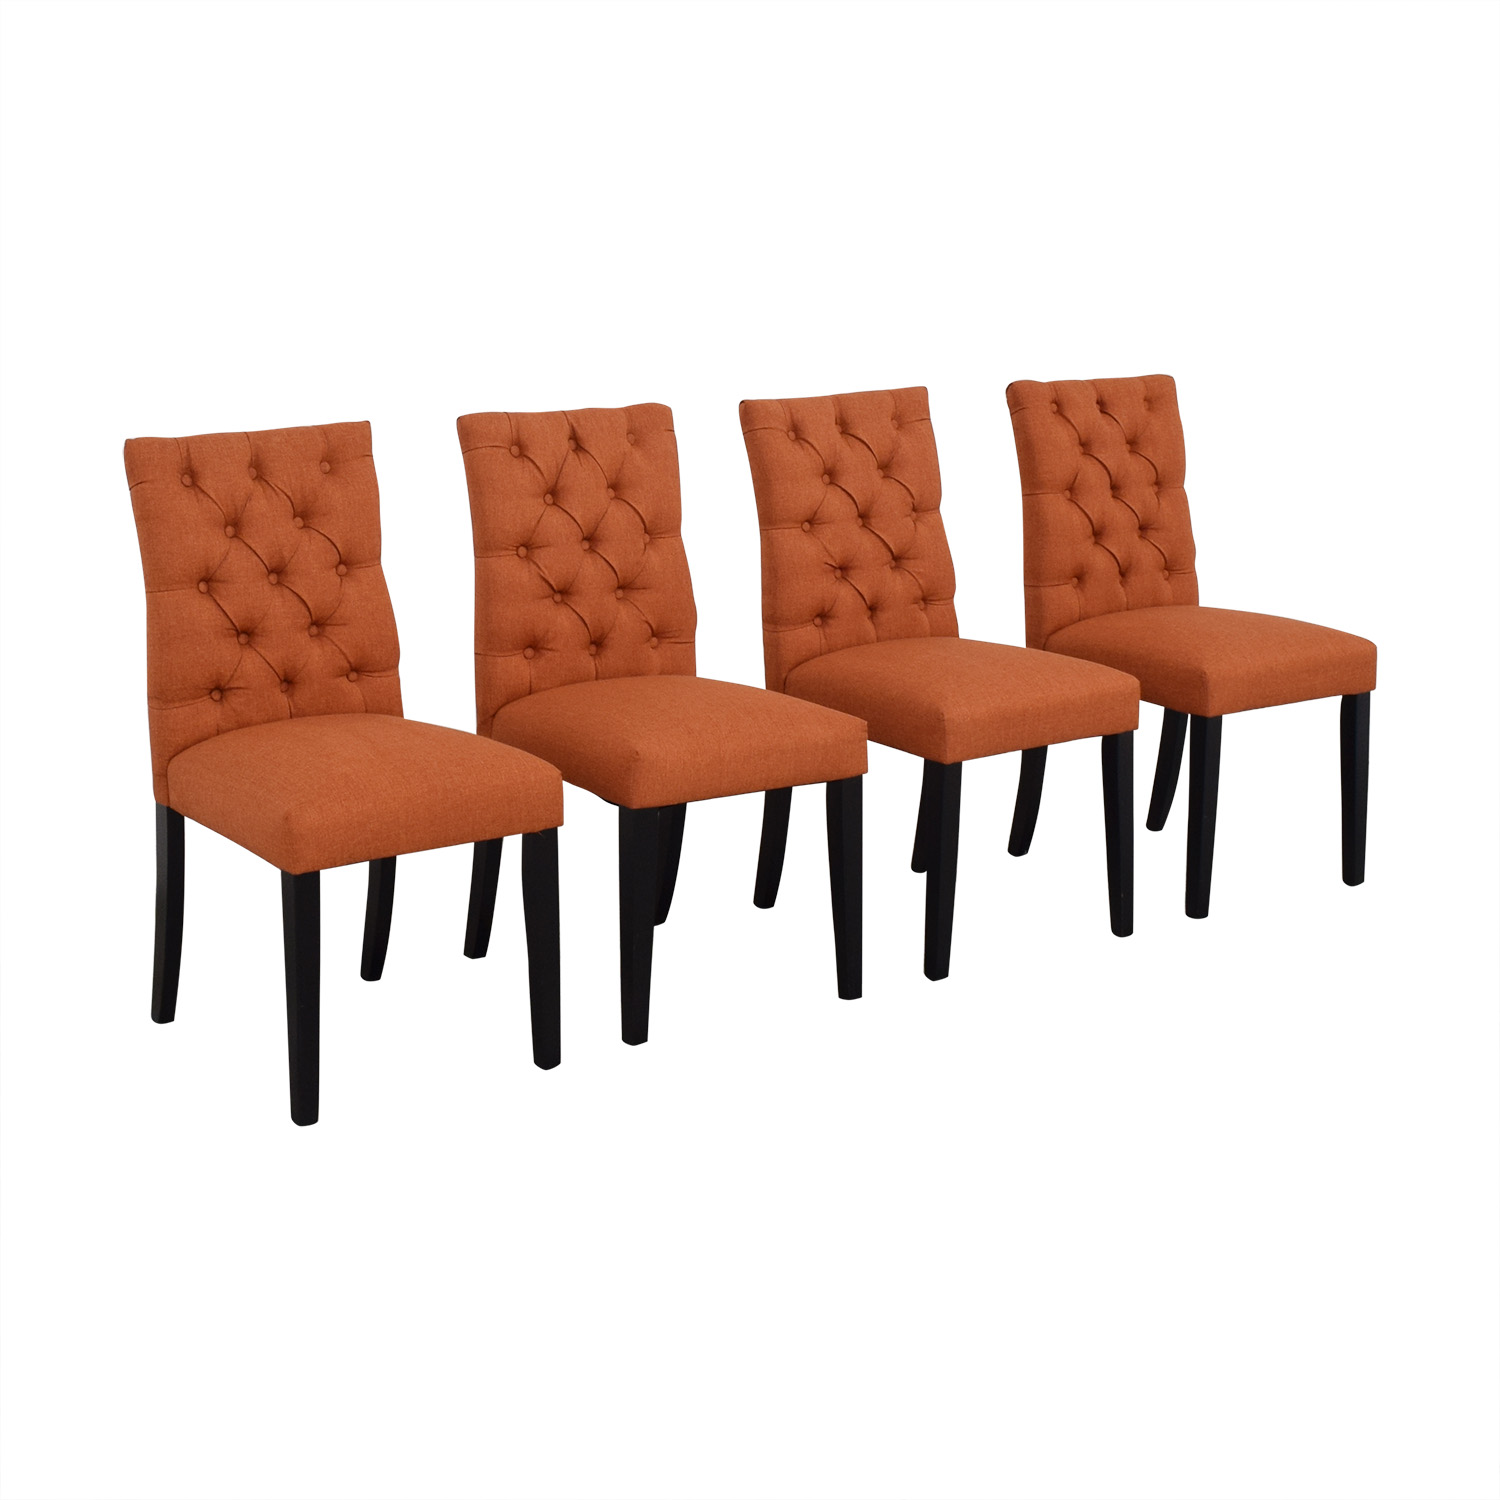 Modway Confer Dining Chairs Modway